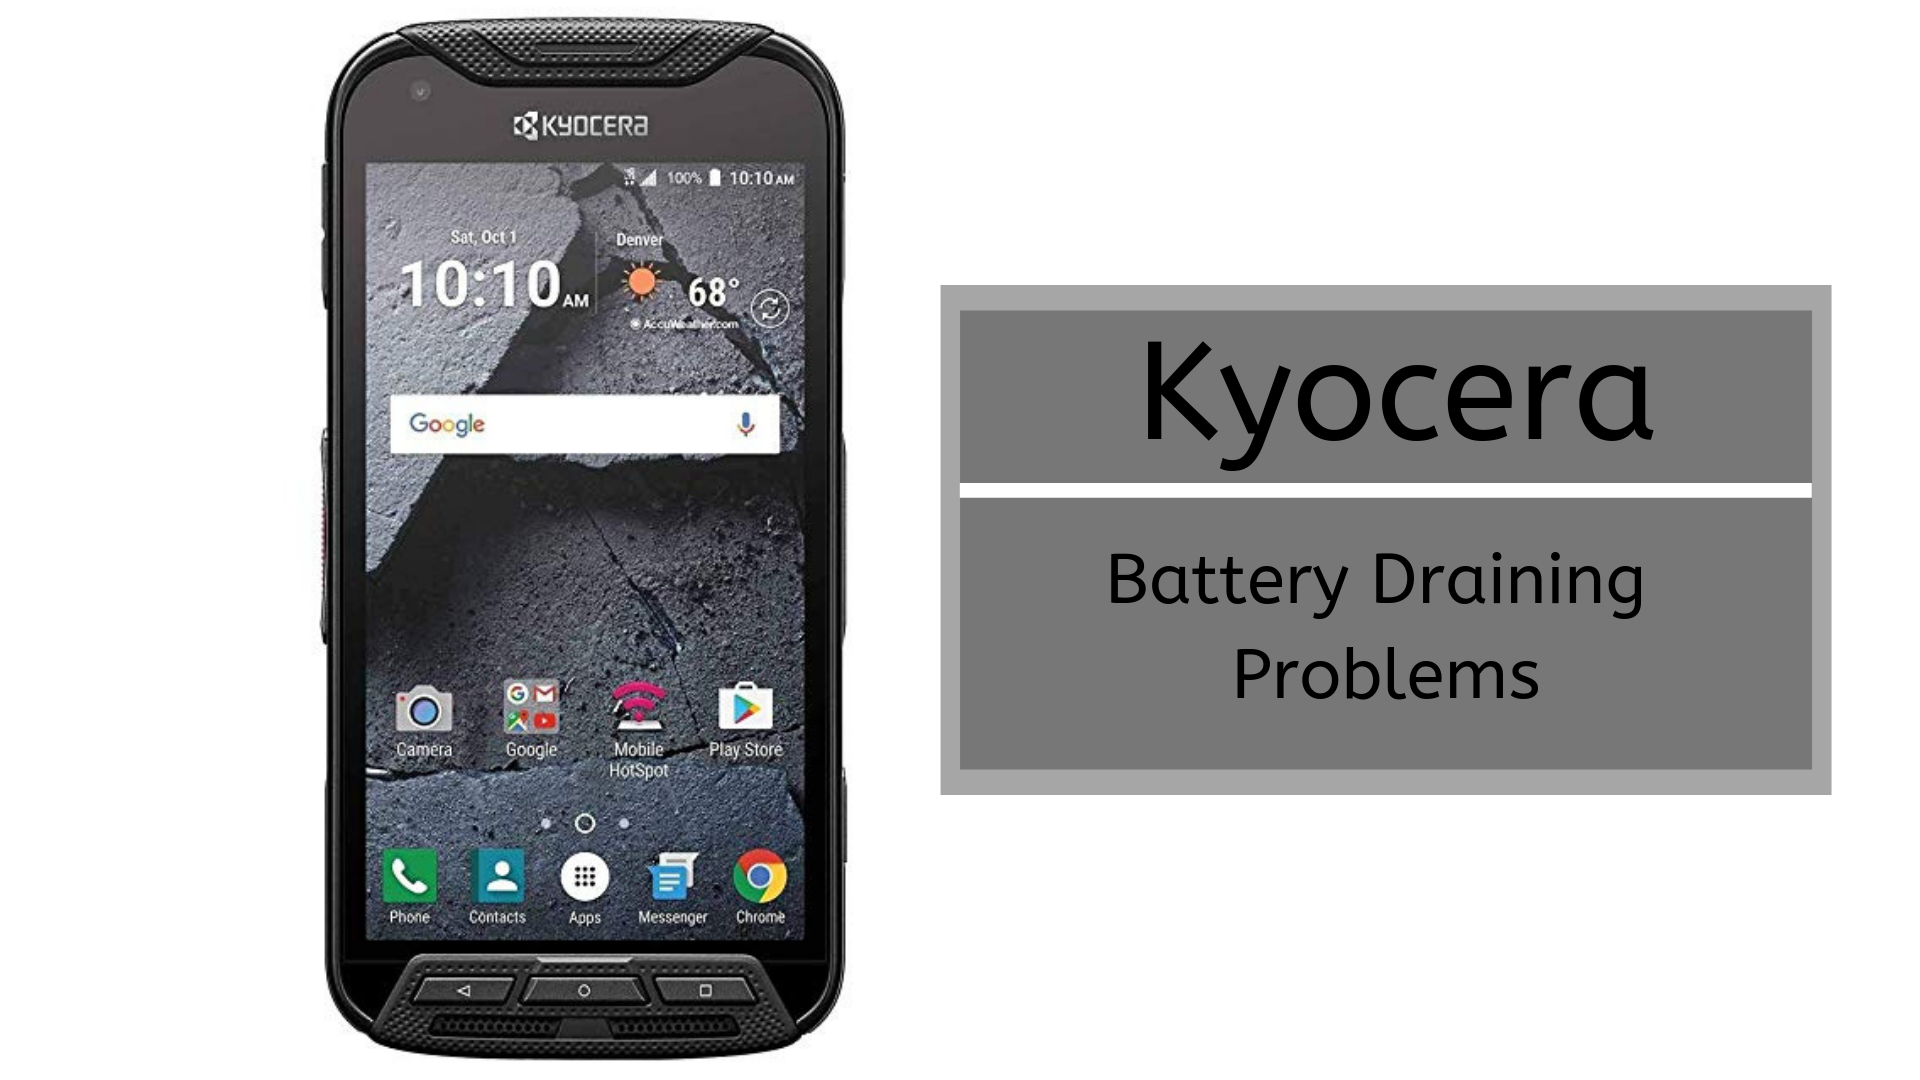 How Fix Kyocera Battery Draining Problems - Troubleshooting and Fixes